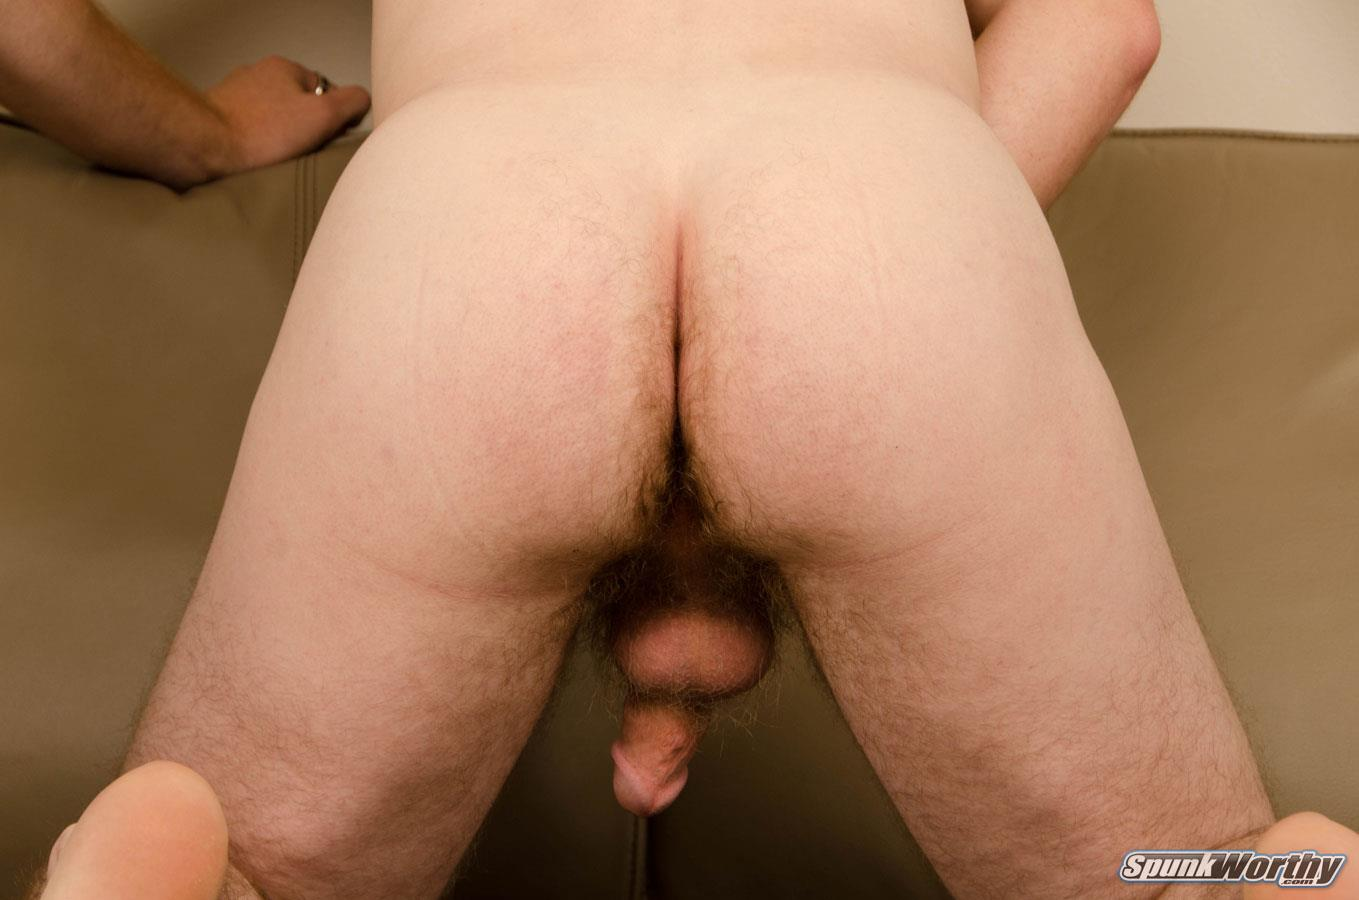 SpunkWorthy-Vance-Naked-Marine-With-A-Thick-Cock-Jerking-Off-11 Tall Straight Marine Jerks Off On Camera For The First Time